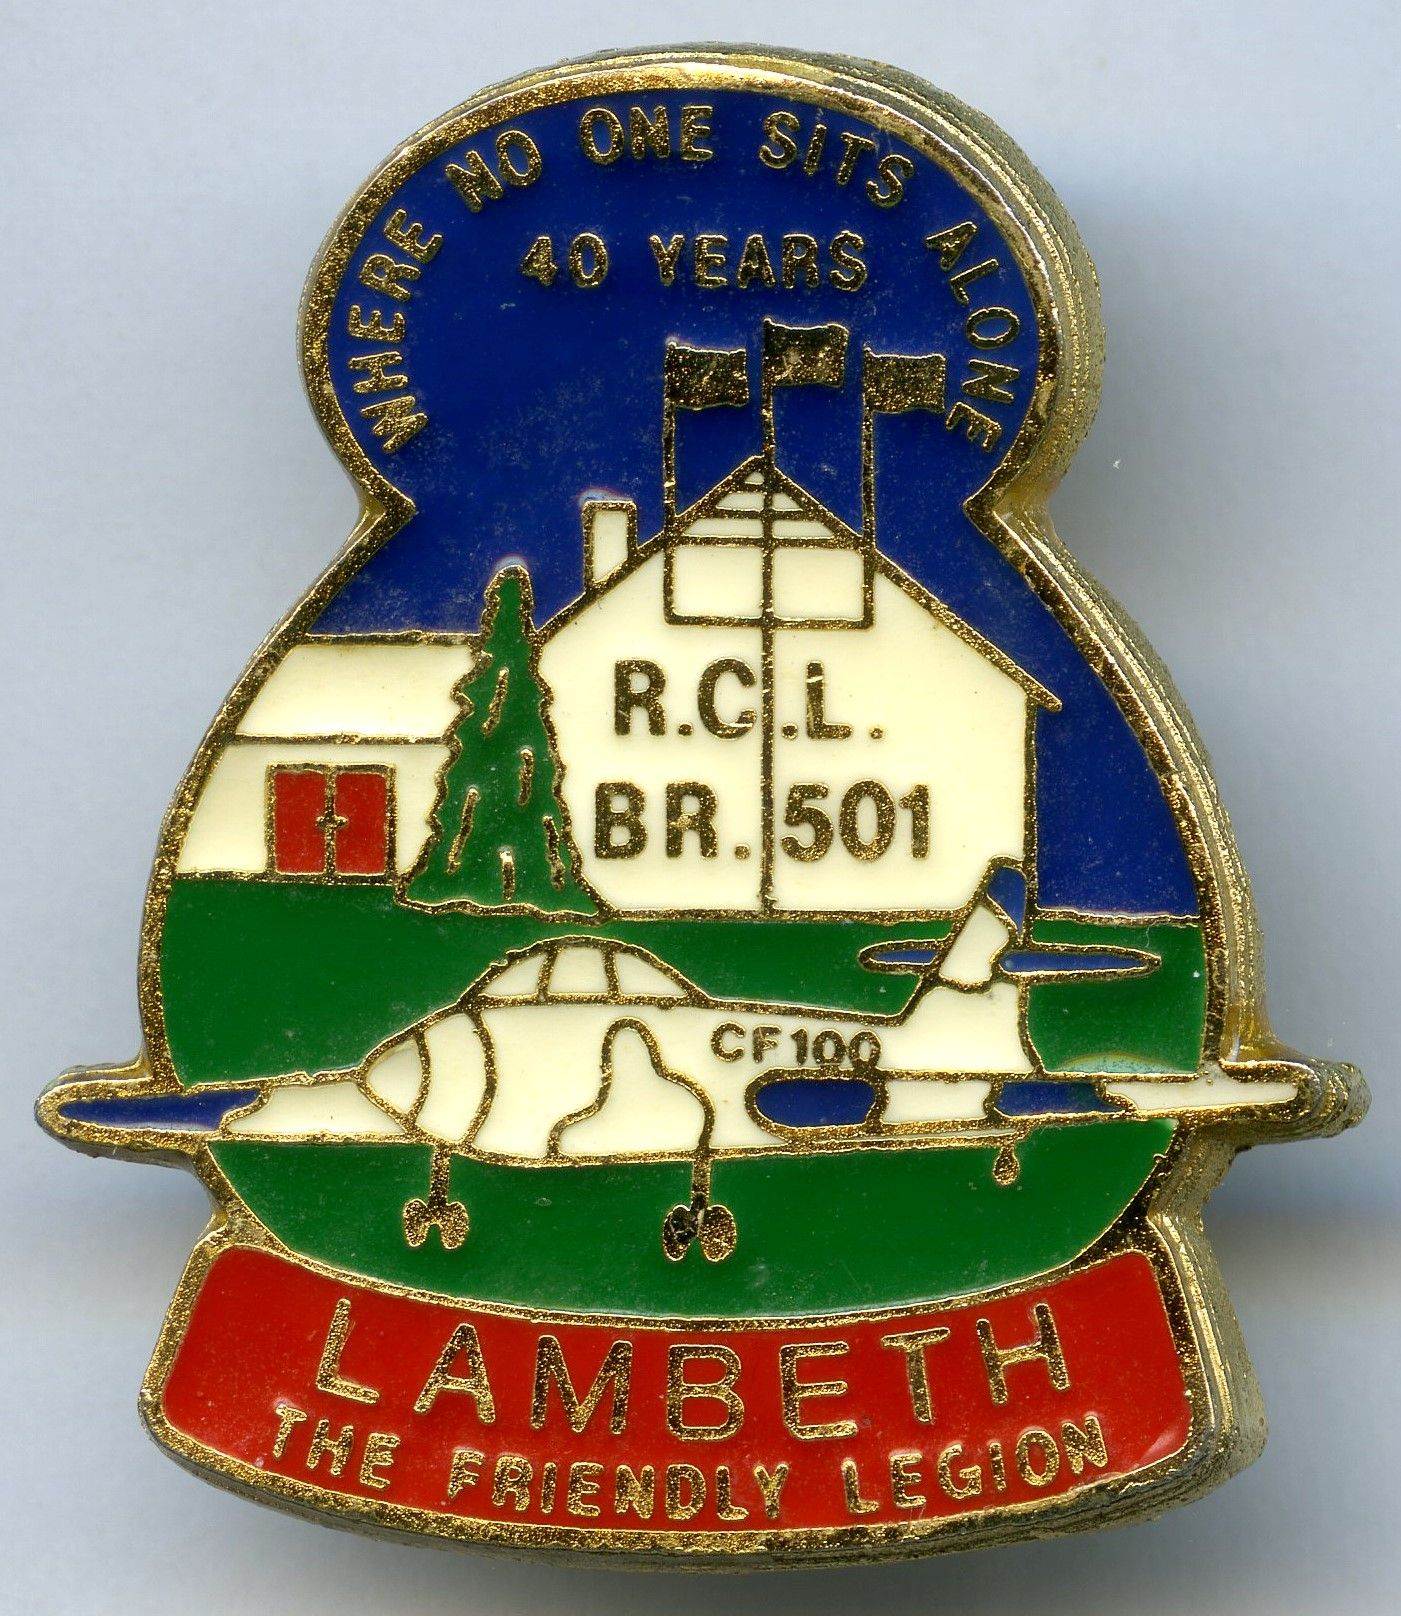 Lambeth, Ontario Branch 501 (White nose on Canuck) in